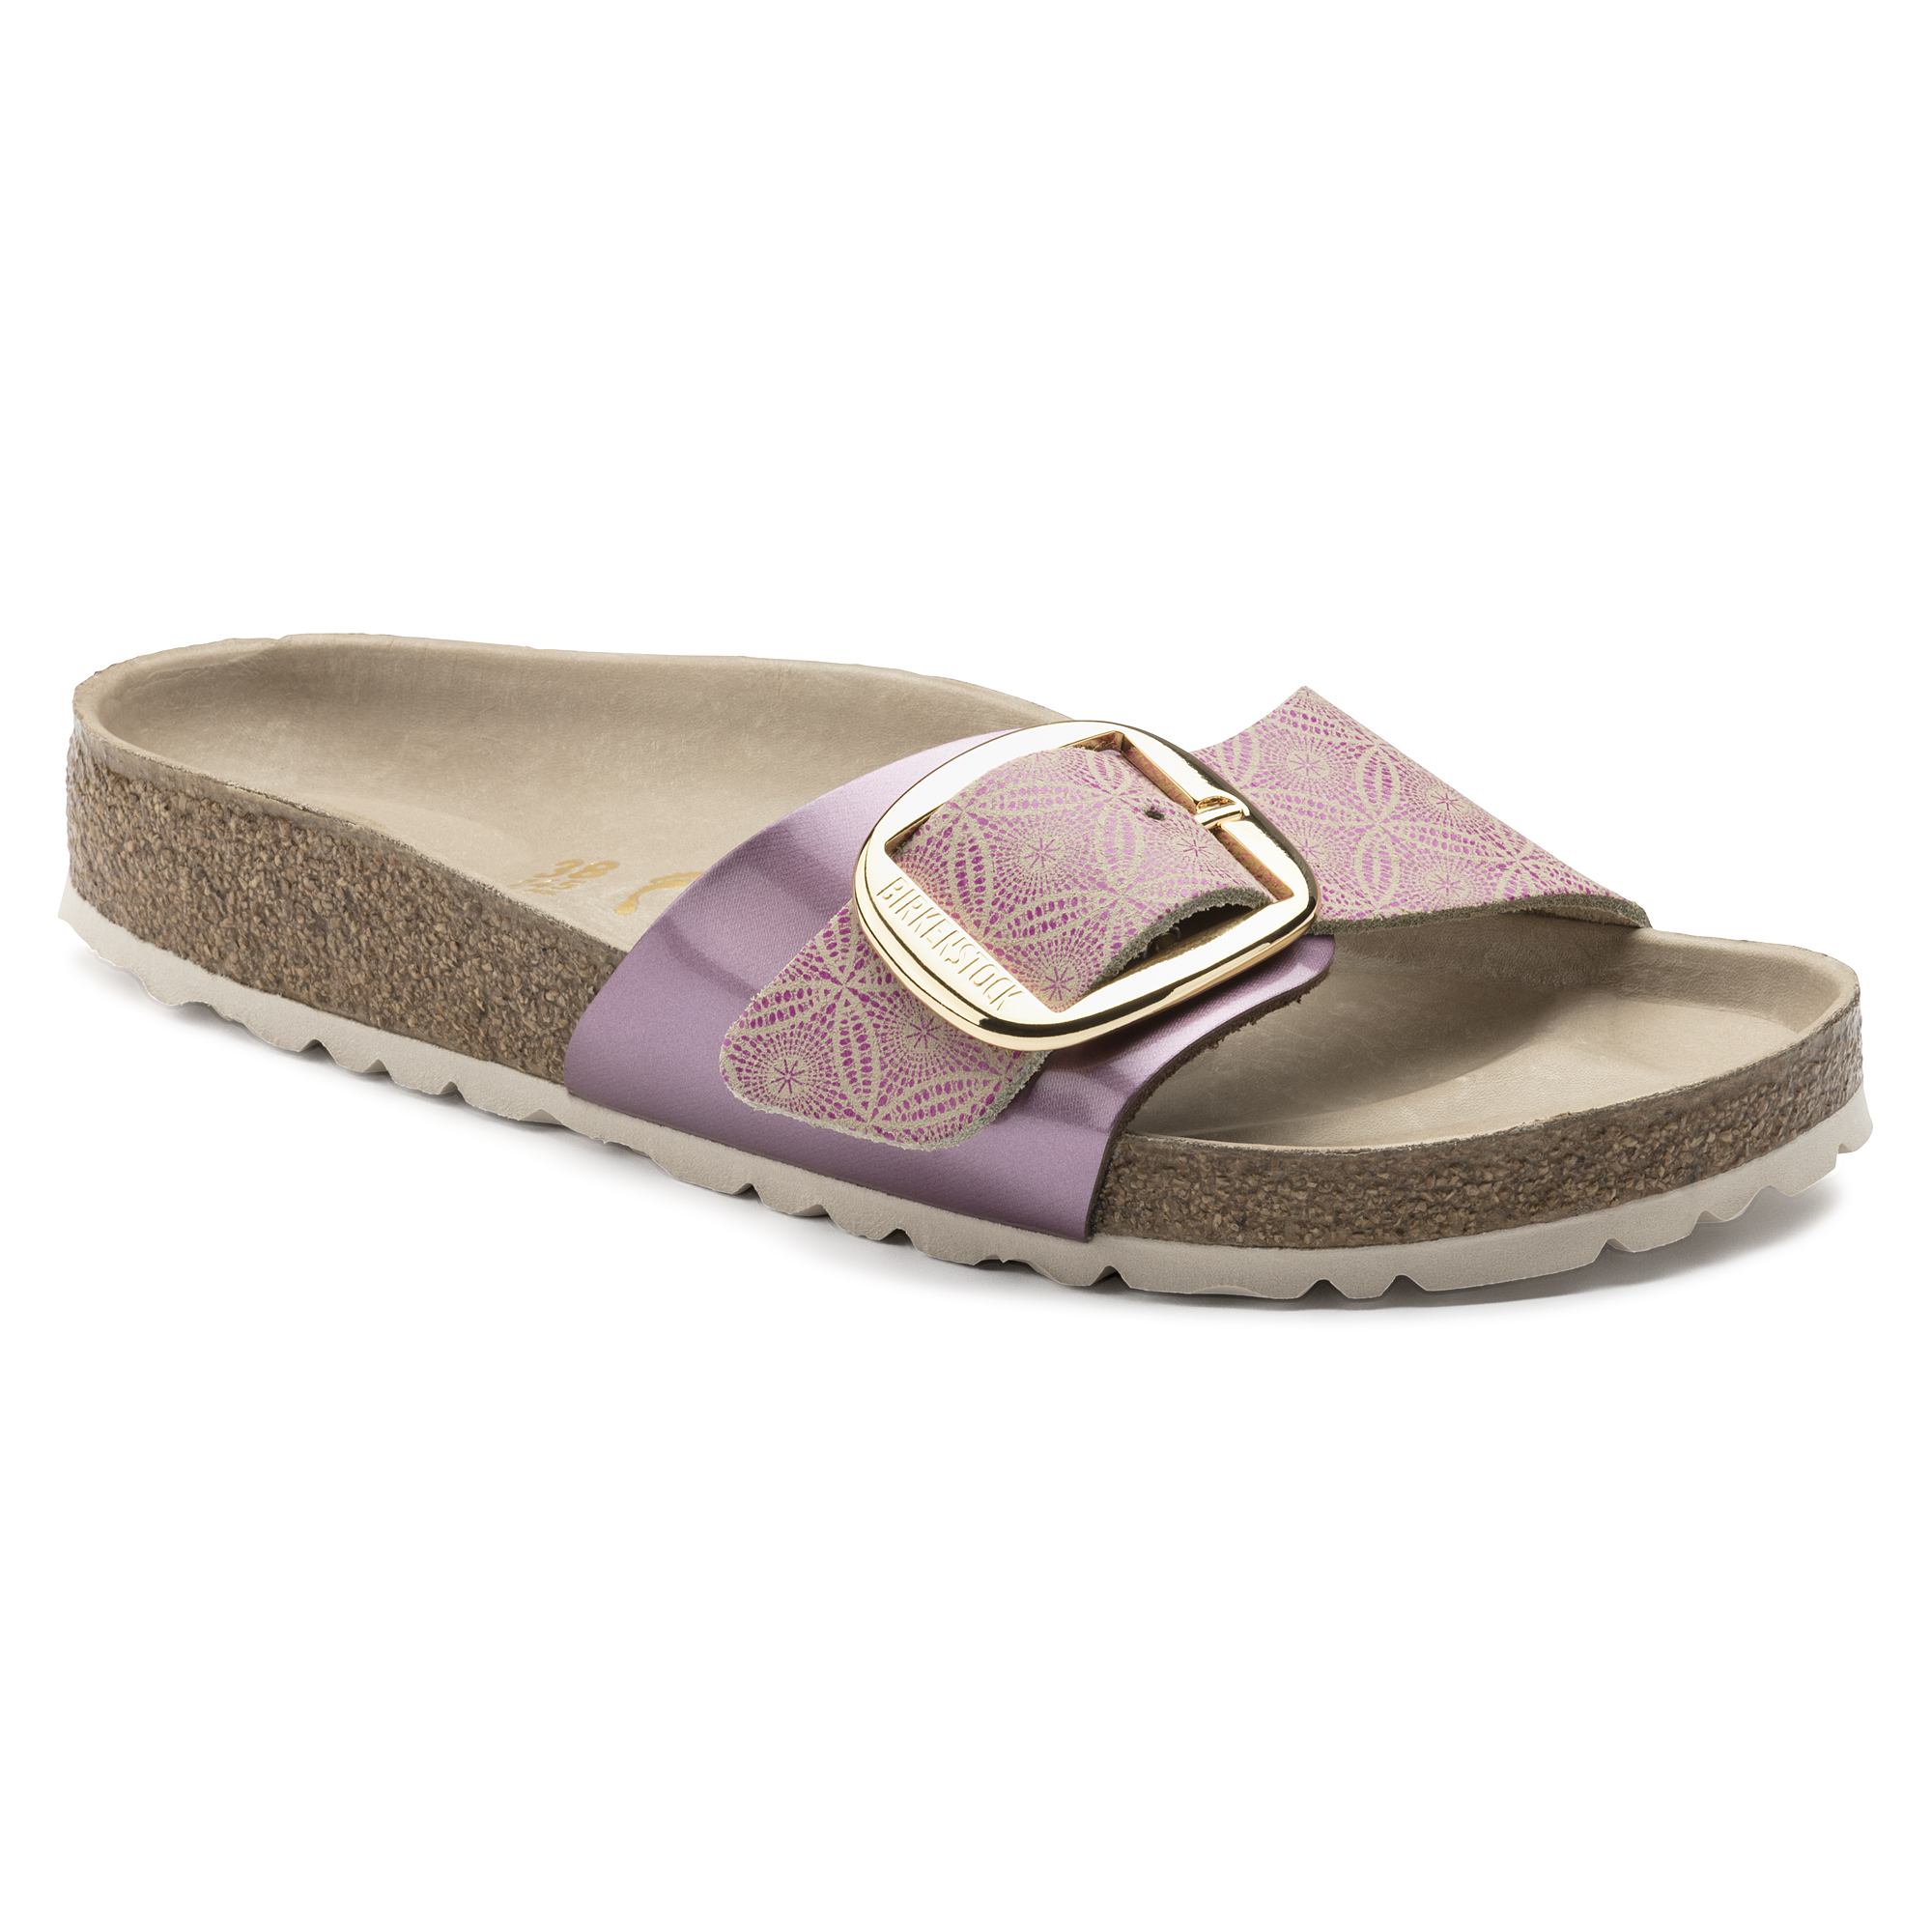 BIRKENSTOCK Damen Madrid Big Buckle Naturleder Schmal Sandale,Ceramic Pattern Rose (1009035),39 EU